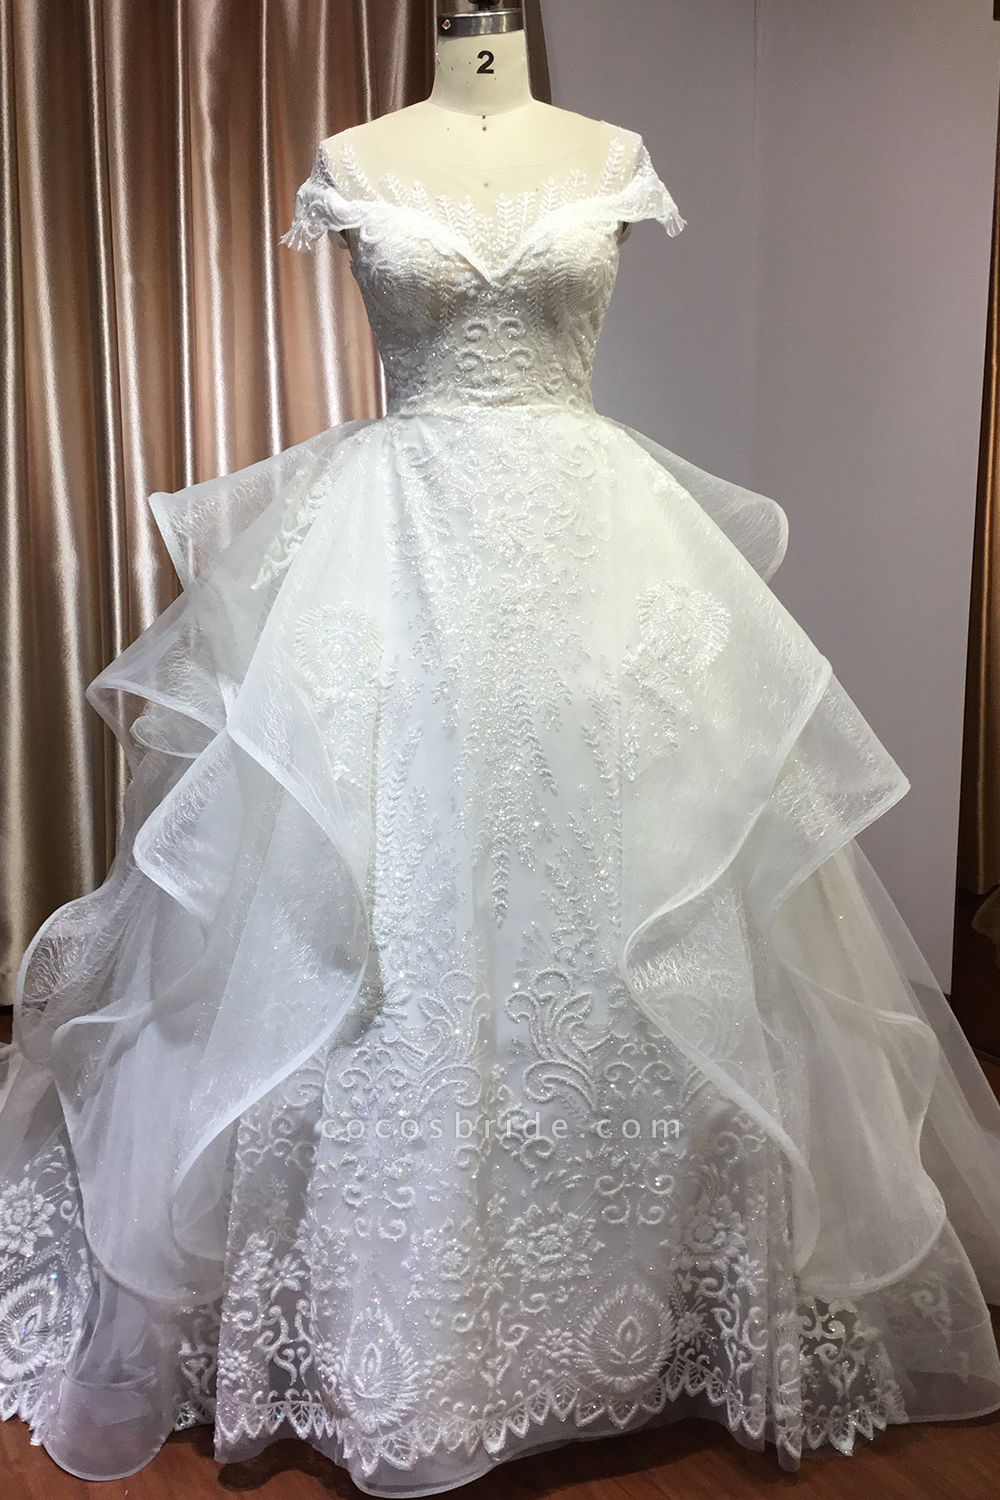 CPH250 Luxury Sequins Appliques Tulle Ruffles Ball Gown Wedding Dress